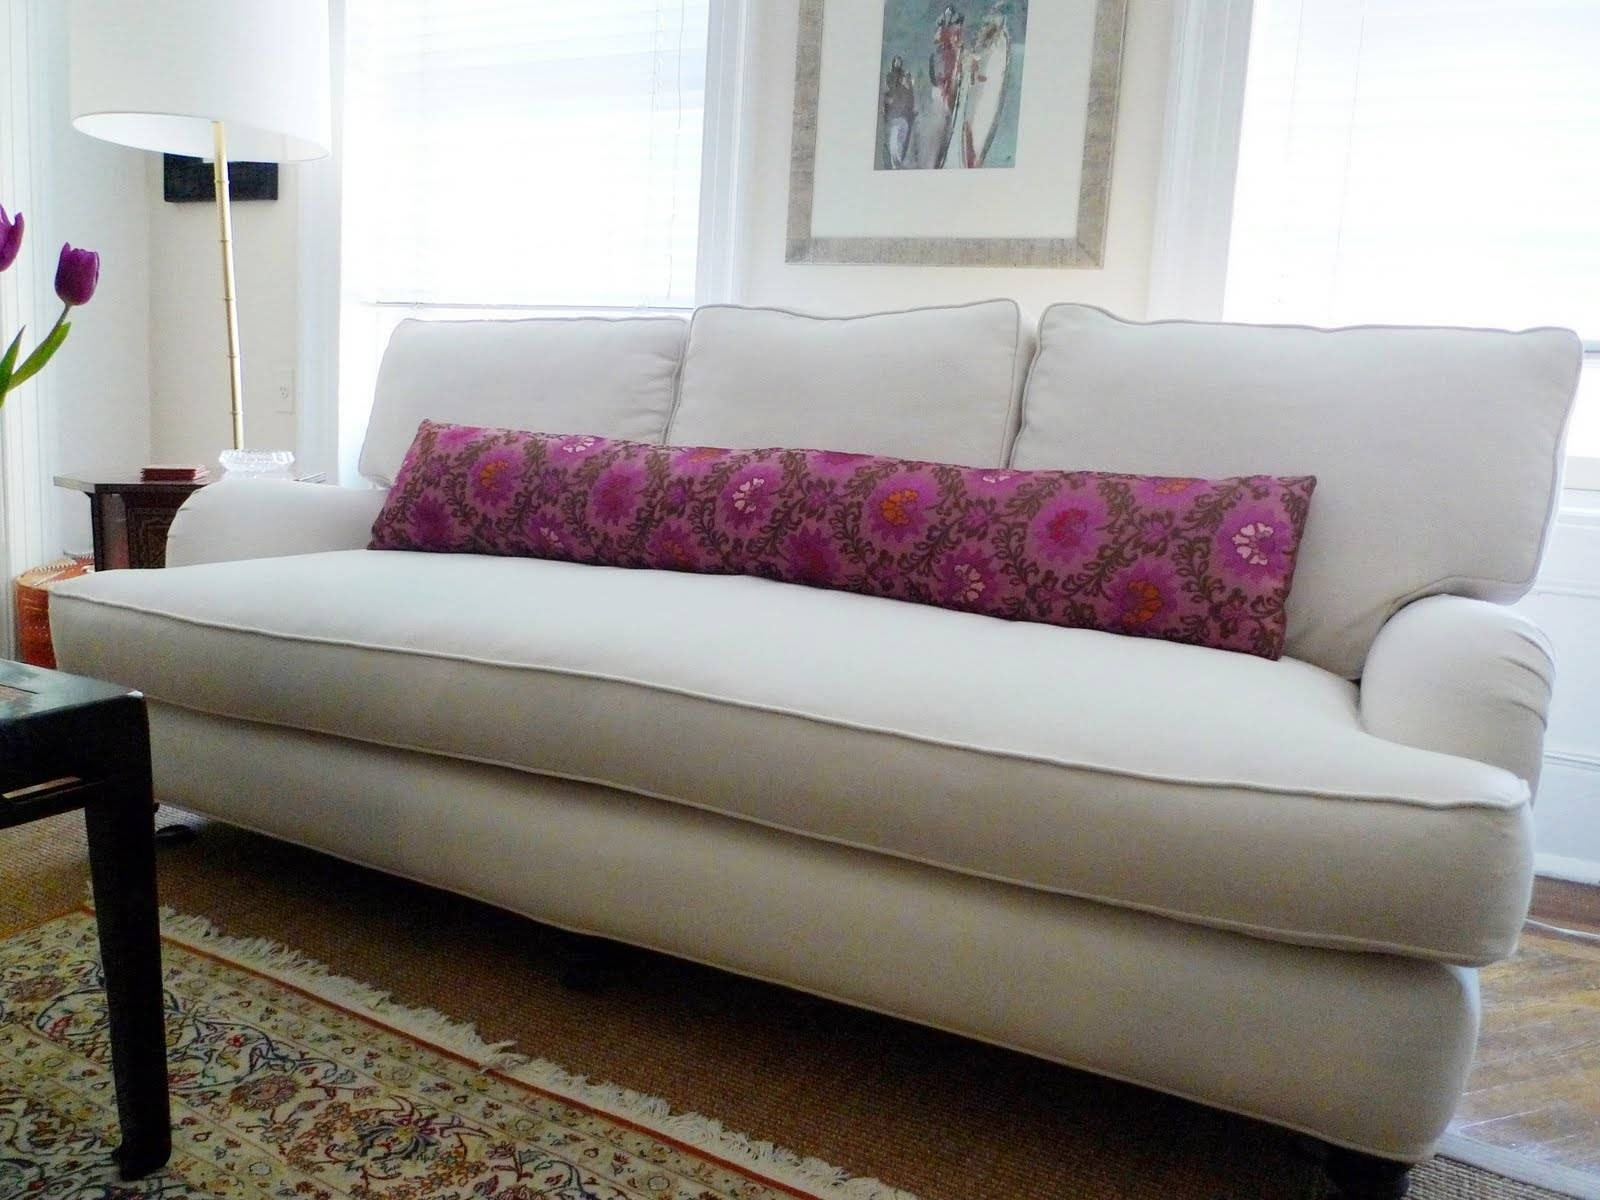 Sofas Center : Literarywondrous Single Cushion Sofa Picture Ideas pertaining to One Cushion Sofas (Image 25 of 30)